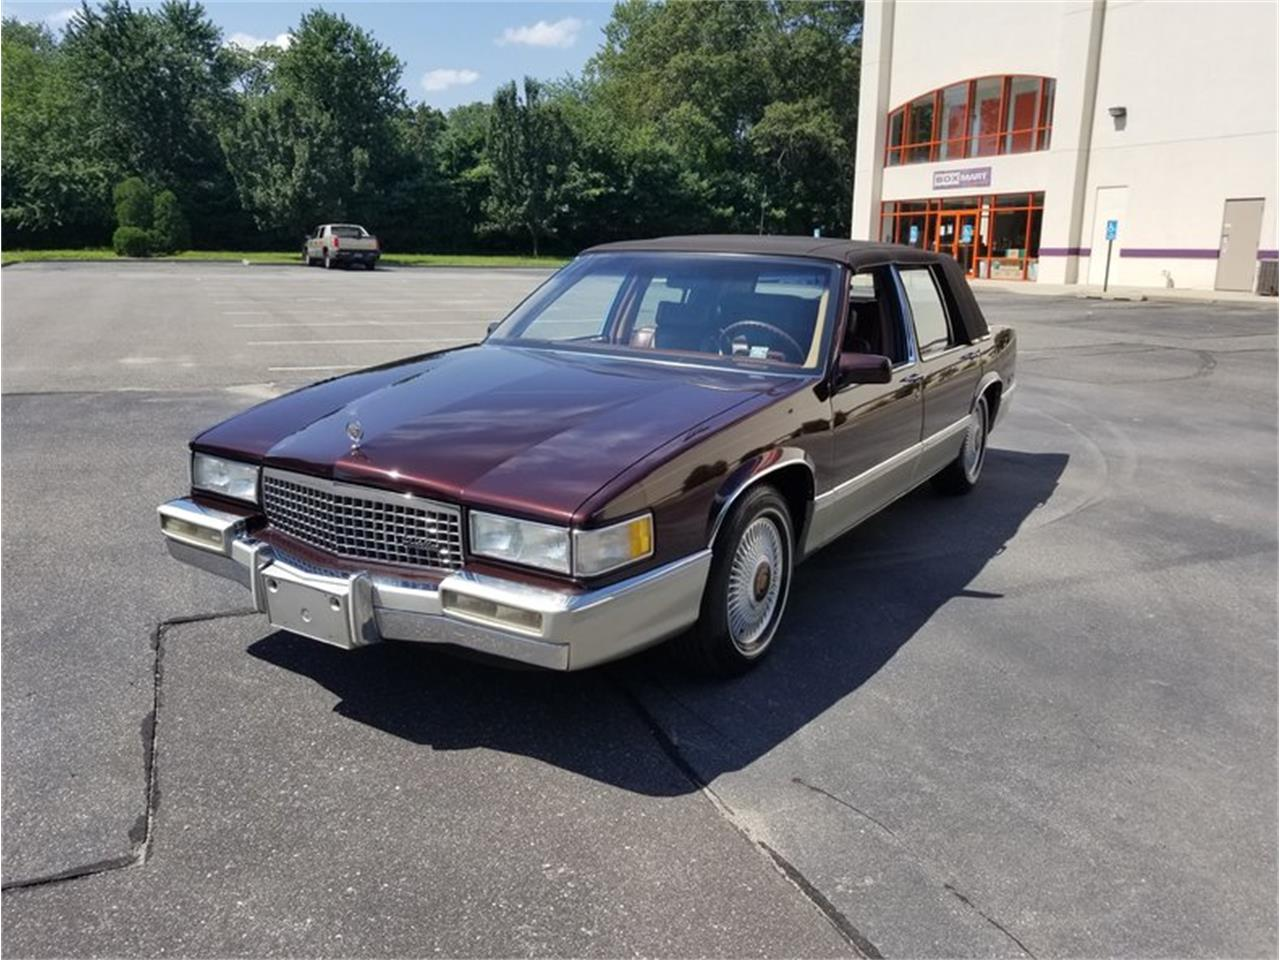 1990 cadillac sedan deville for sale classiccars com cc 1014022 1990 cadillac sedan deville for sale